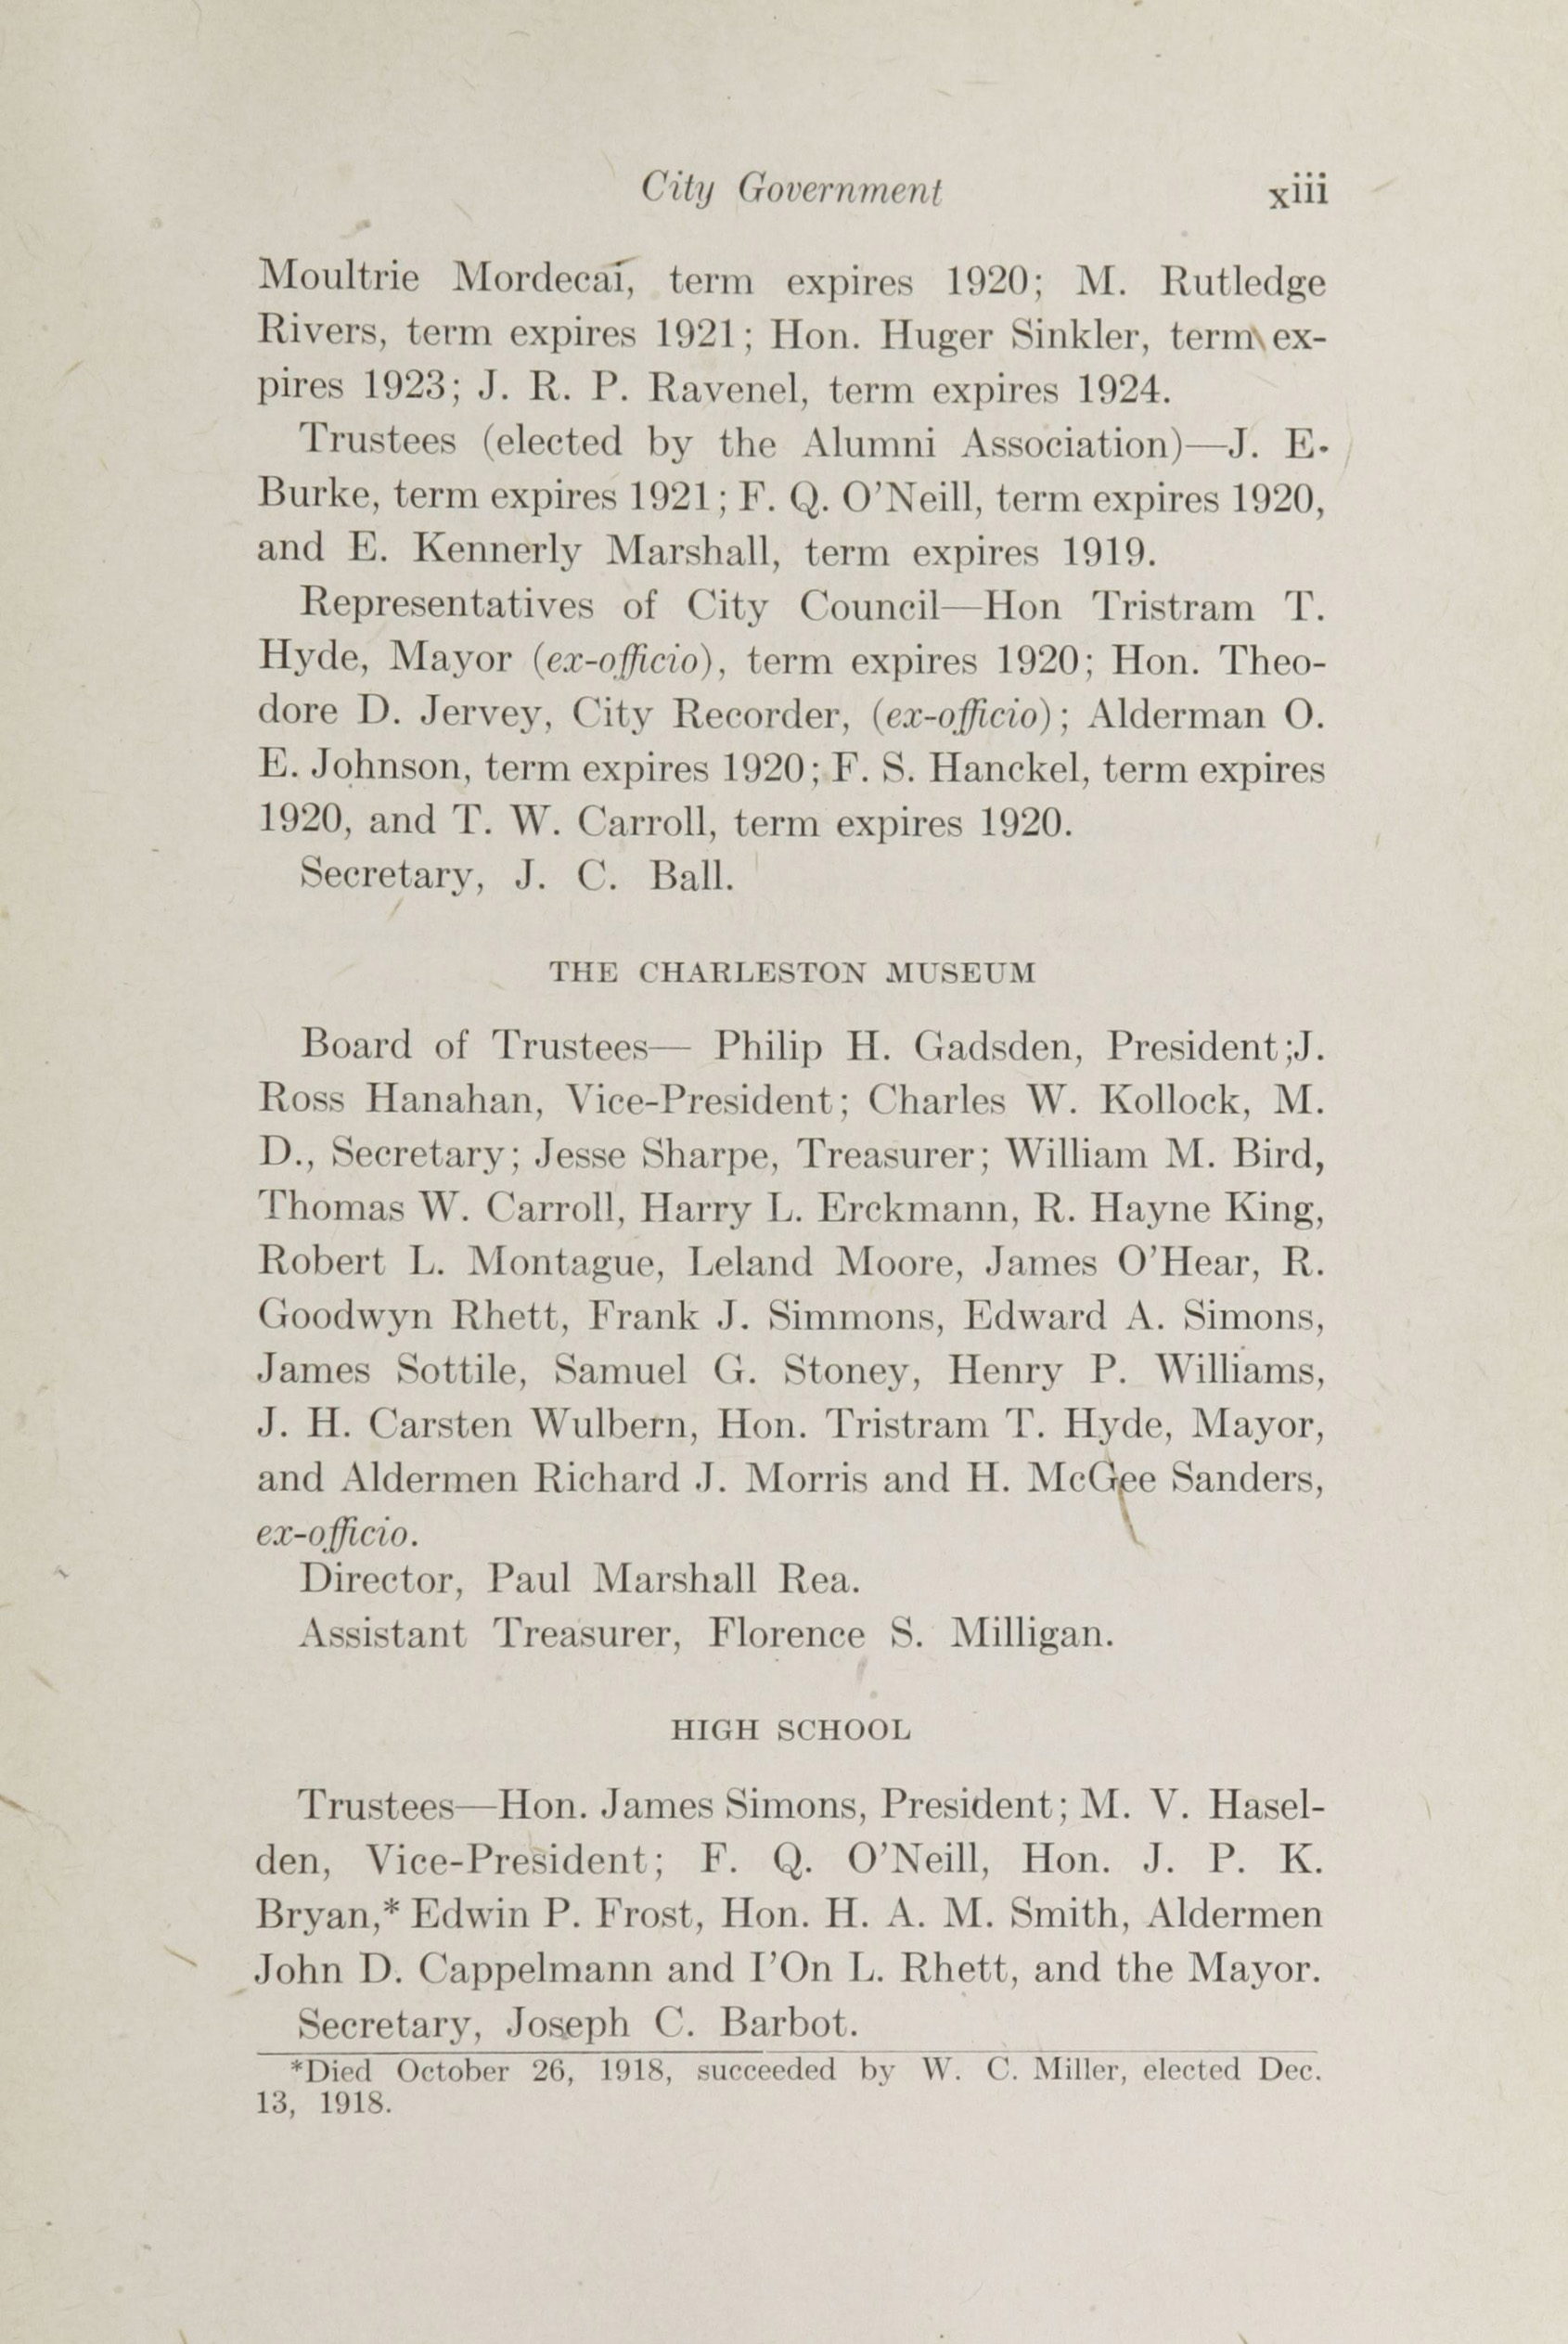 Charleston Yearbook, 1918, page xiii